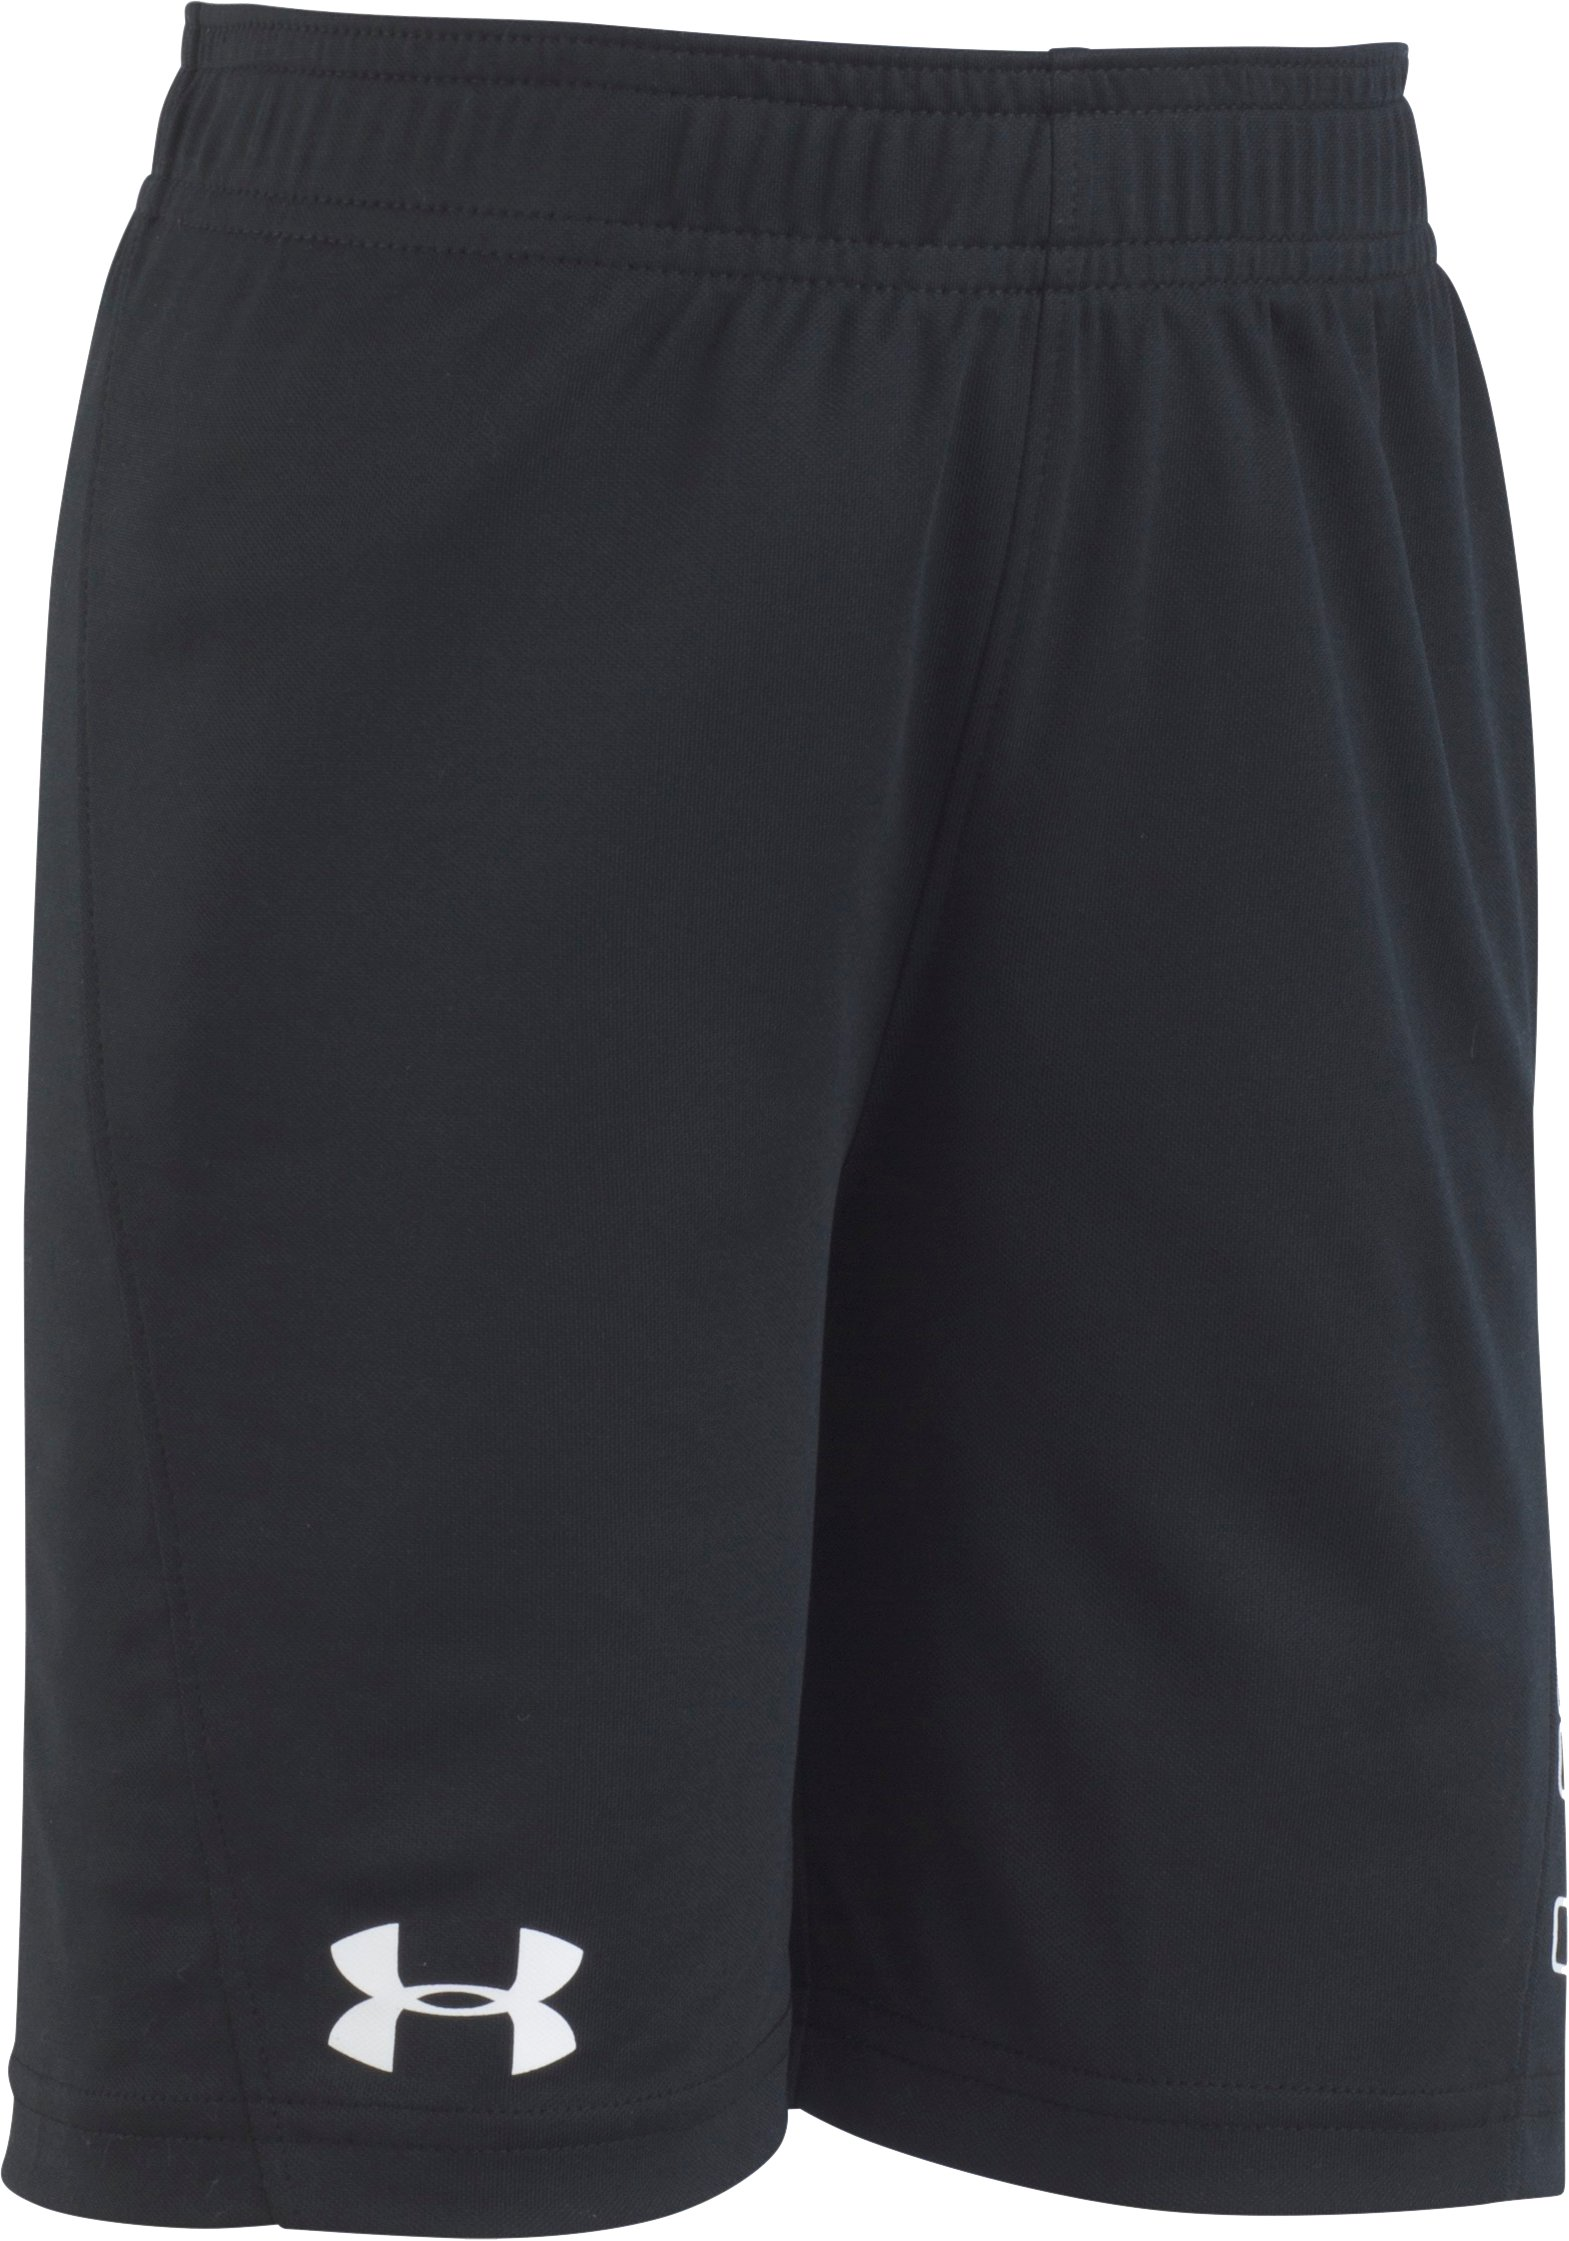 Boys' Infant UA Kick Off Solid Short , Black , Laydown